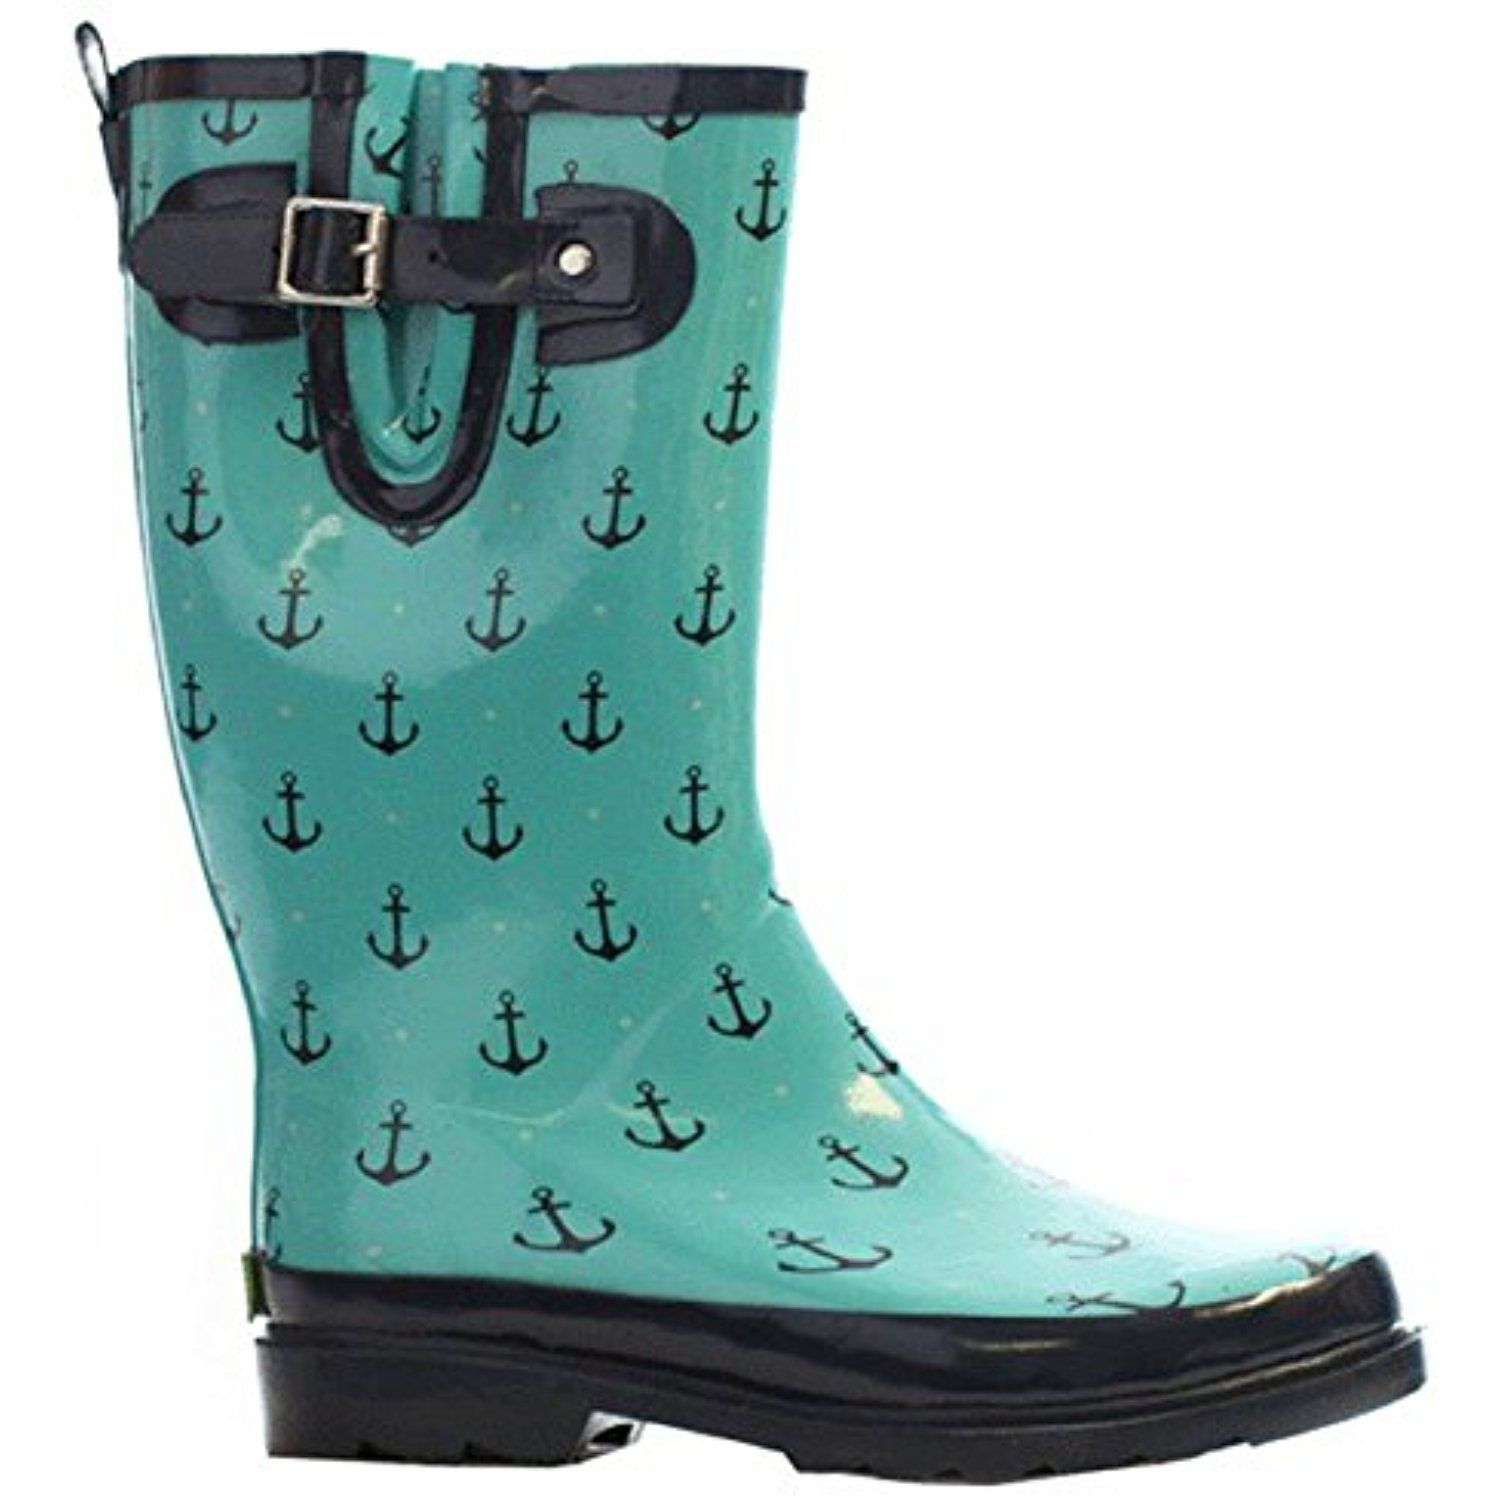 Women's Capelli New York Split Dot Lines Rain Boots from china free shipping 2014 new sale online discount Inexpensive many kinds of online free shipping fake tdUfek58Ks